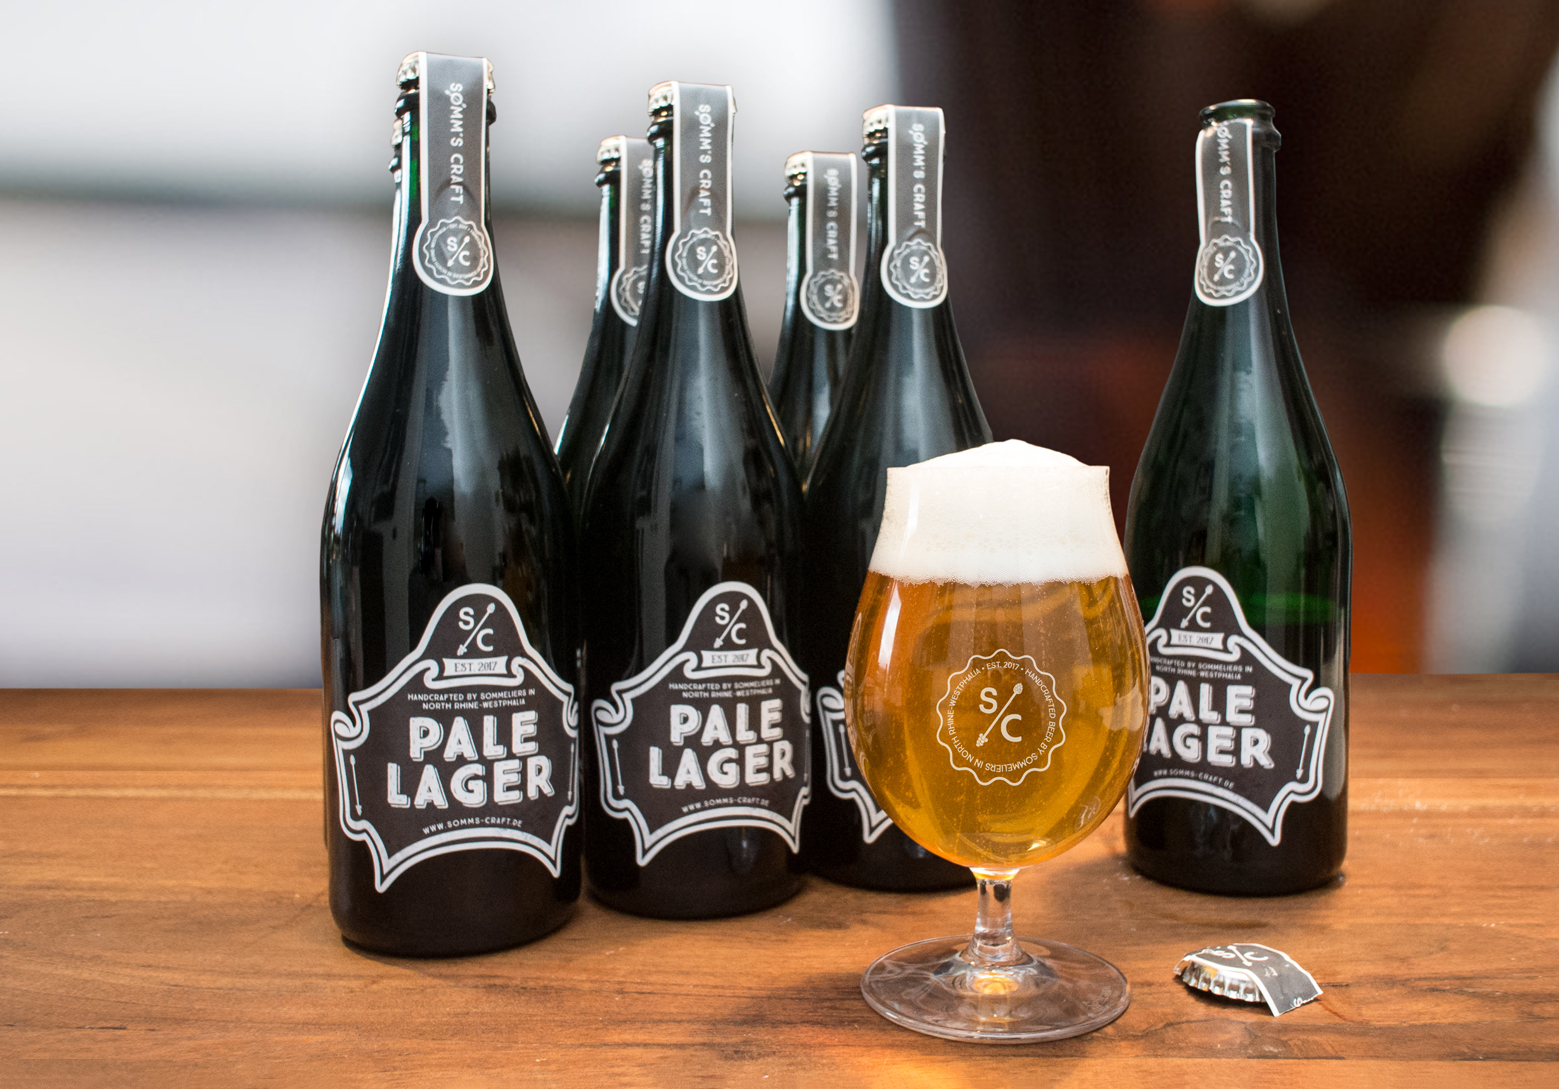 Somm's Craft Pale Lager